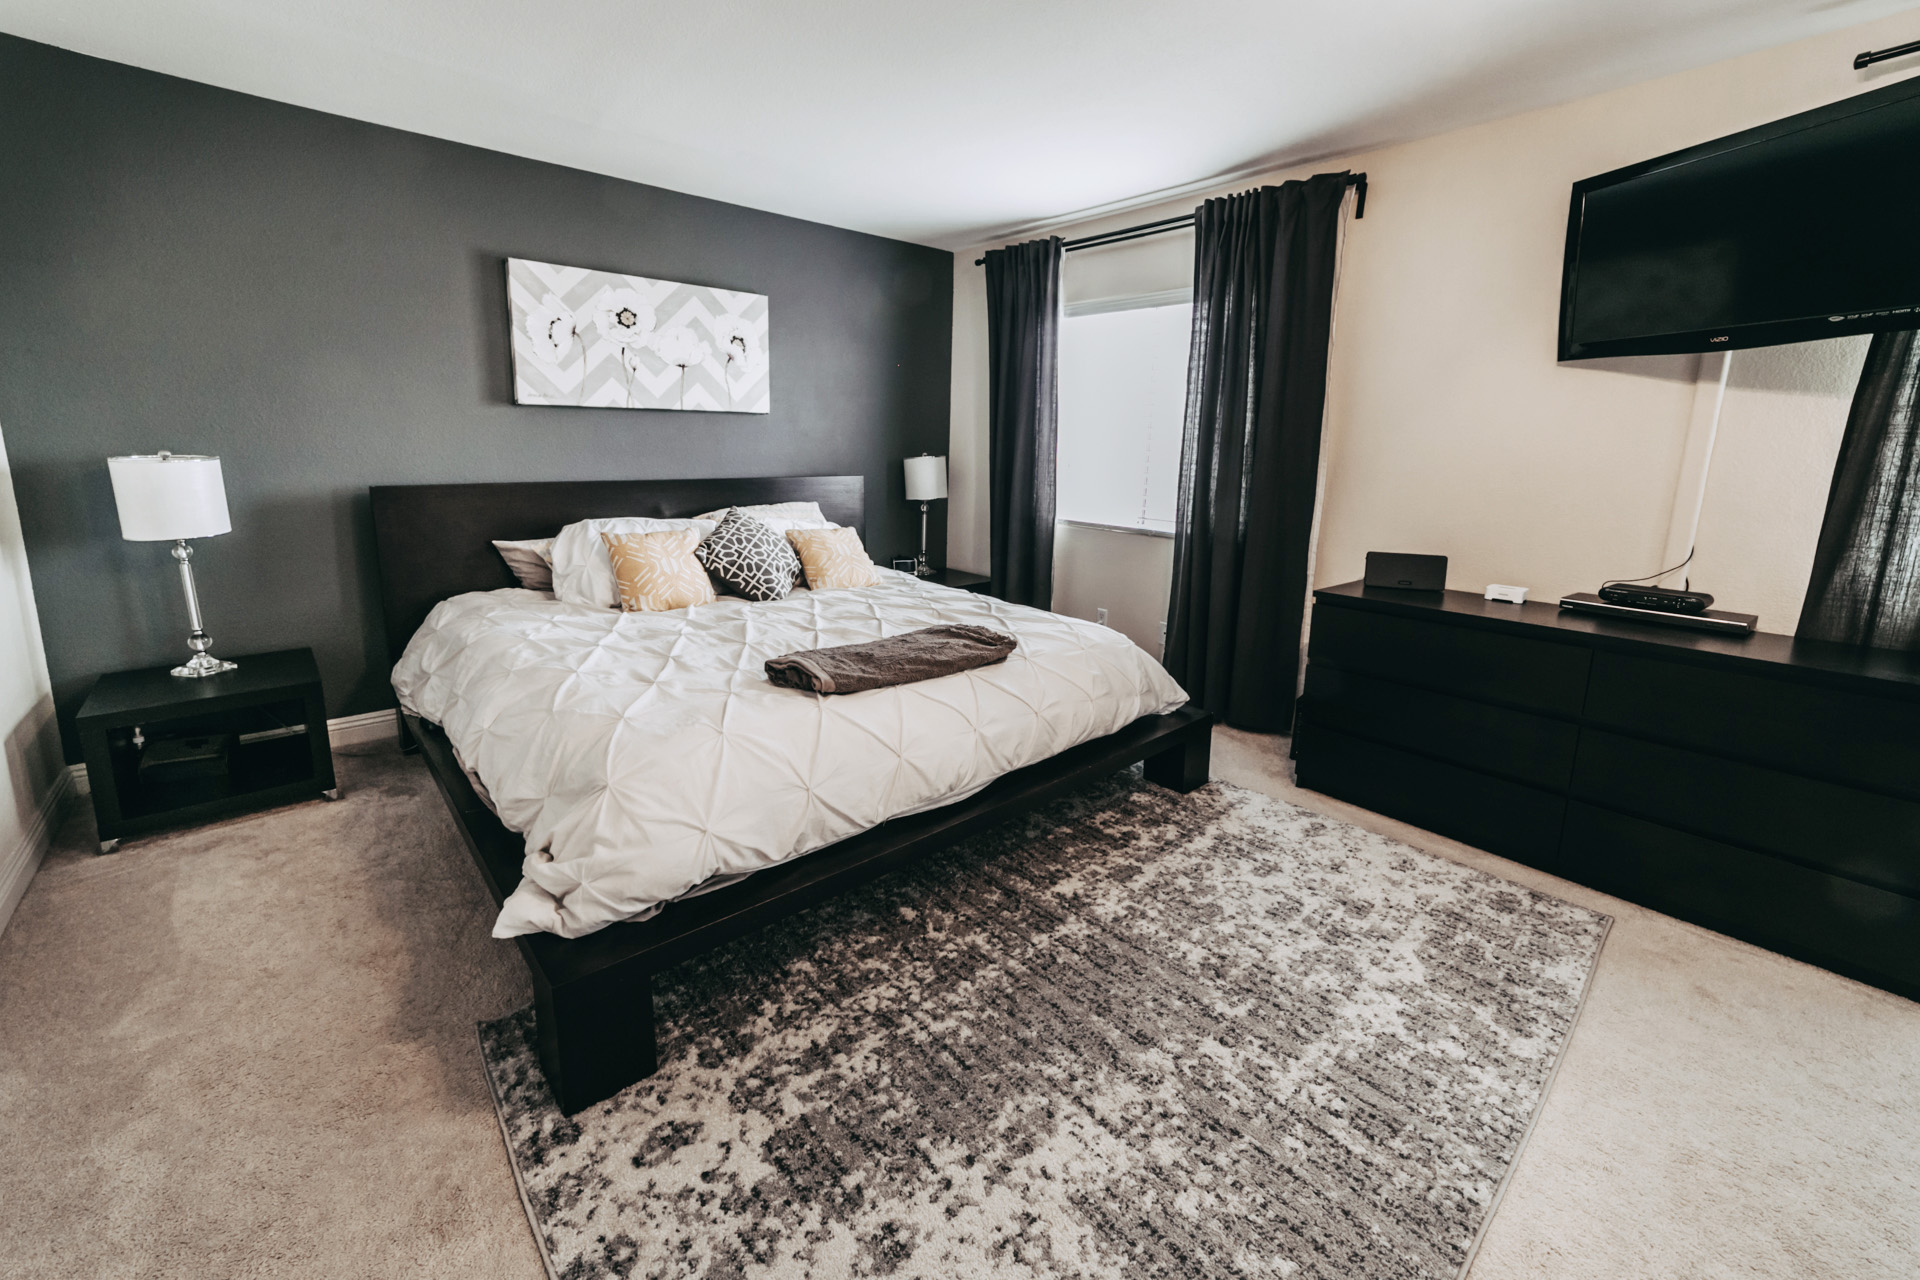 Master bedroom real estate pictures. Real Estate photographer in Las Vegas.